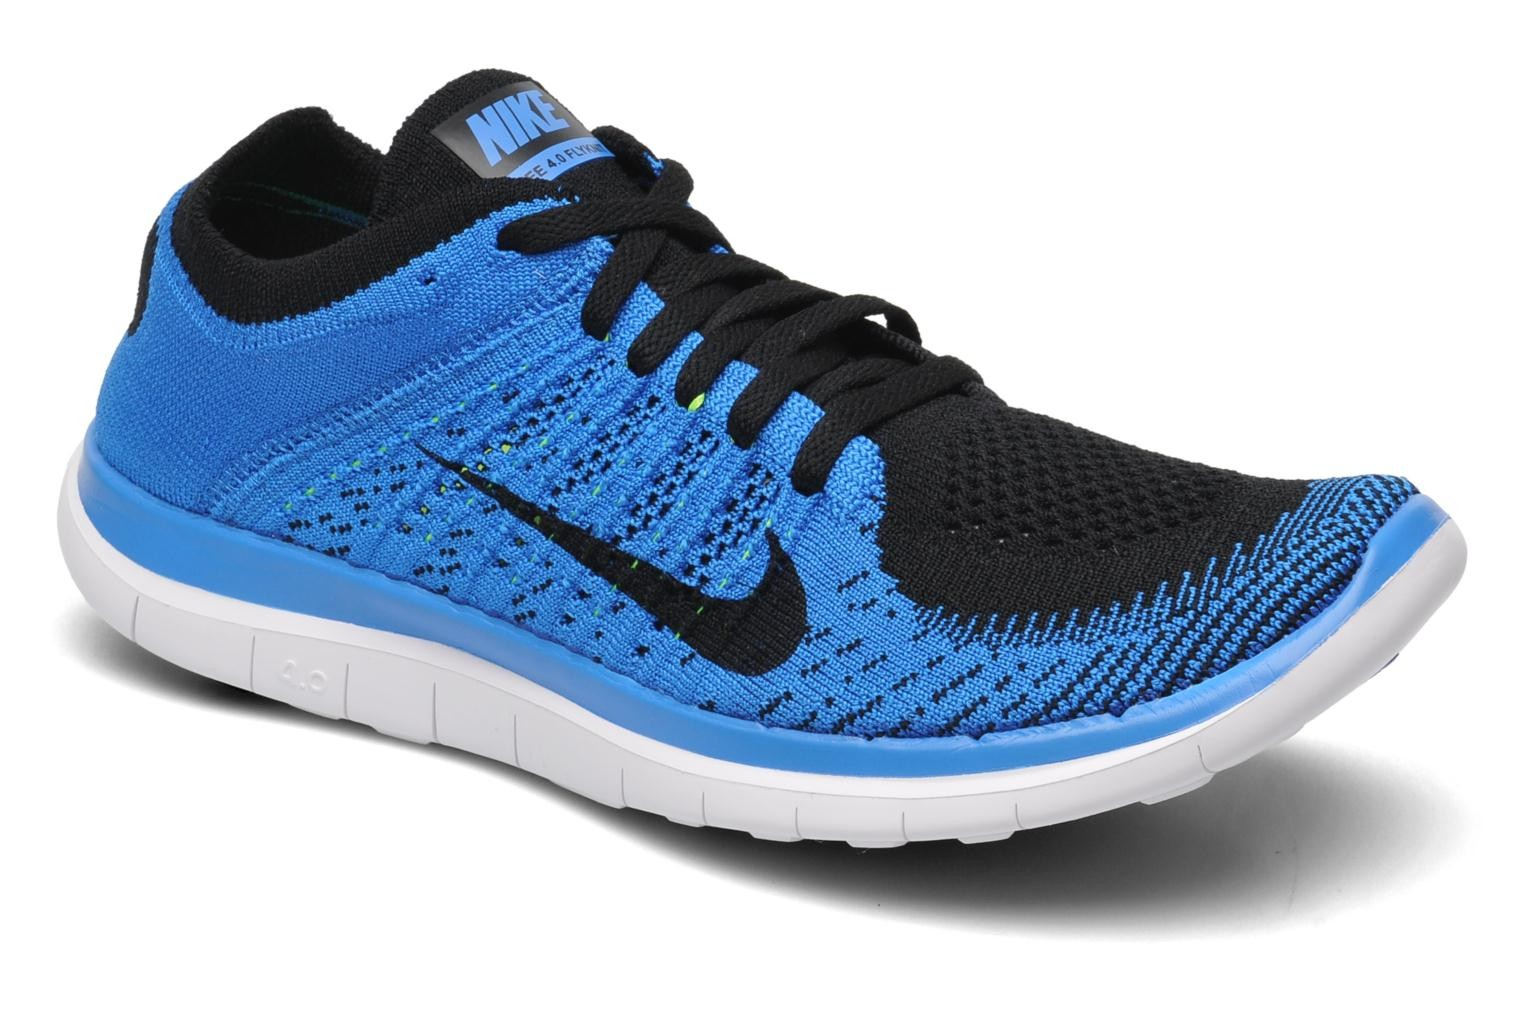 the best attitude 616b2 4e5da nike free run 4.0 flyknit blue SKU- UCc